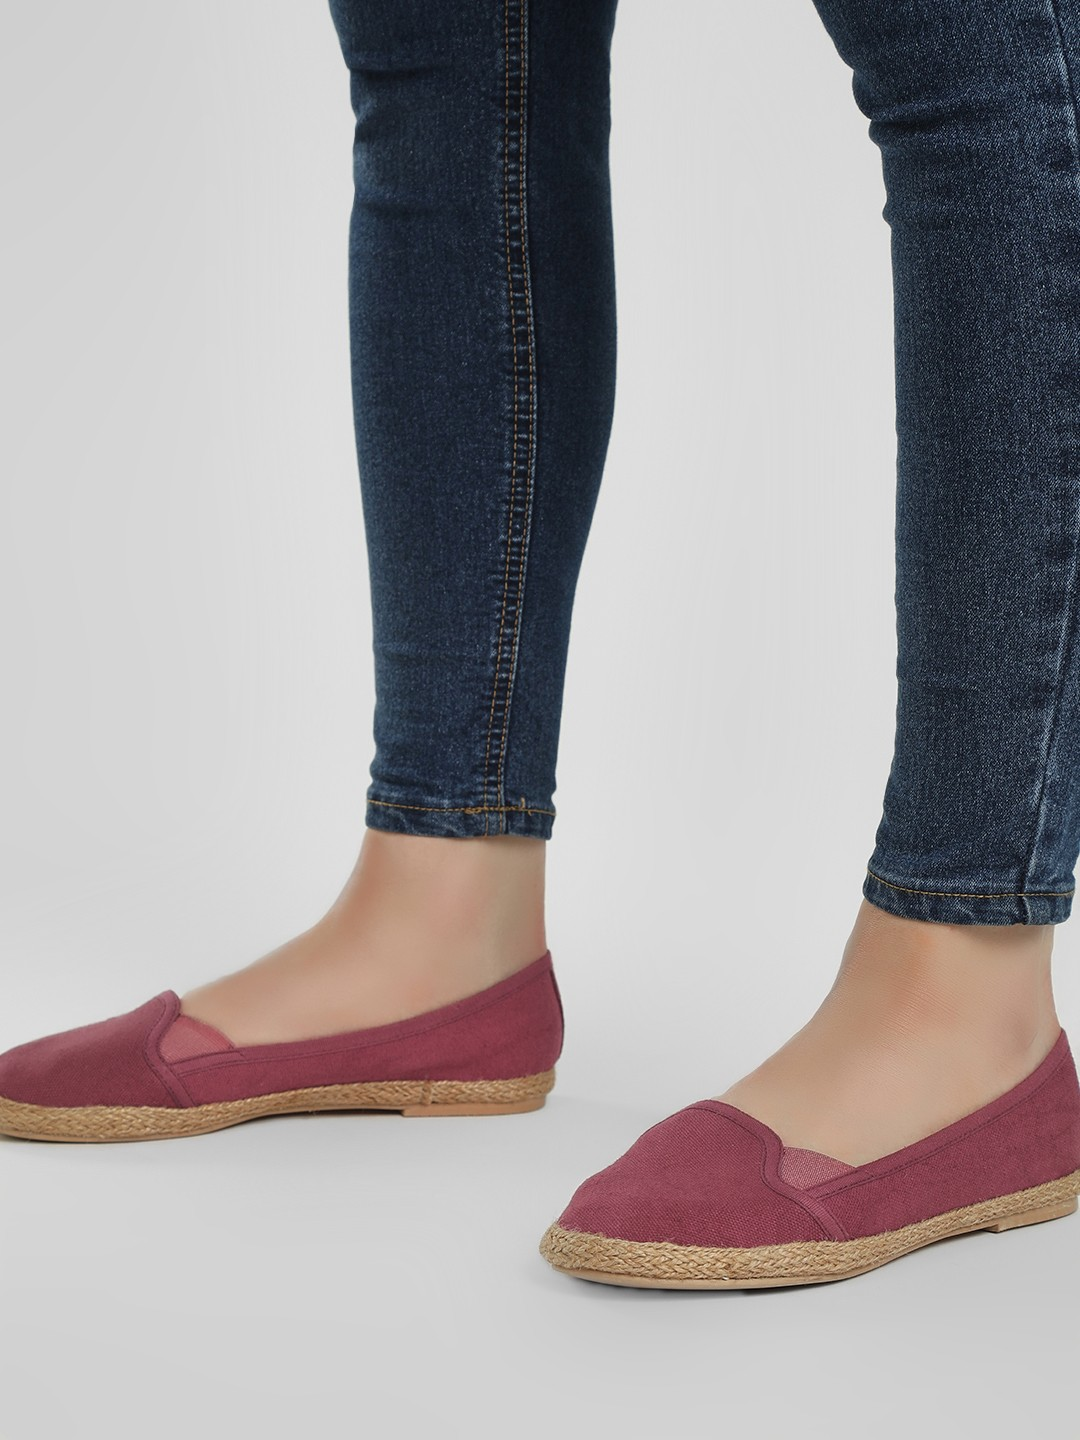 KOOVS Burgundy Jute Braided Canvas Ballerinas 1